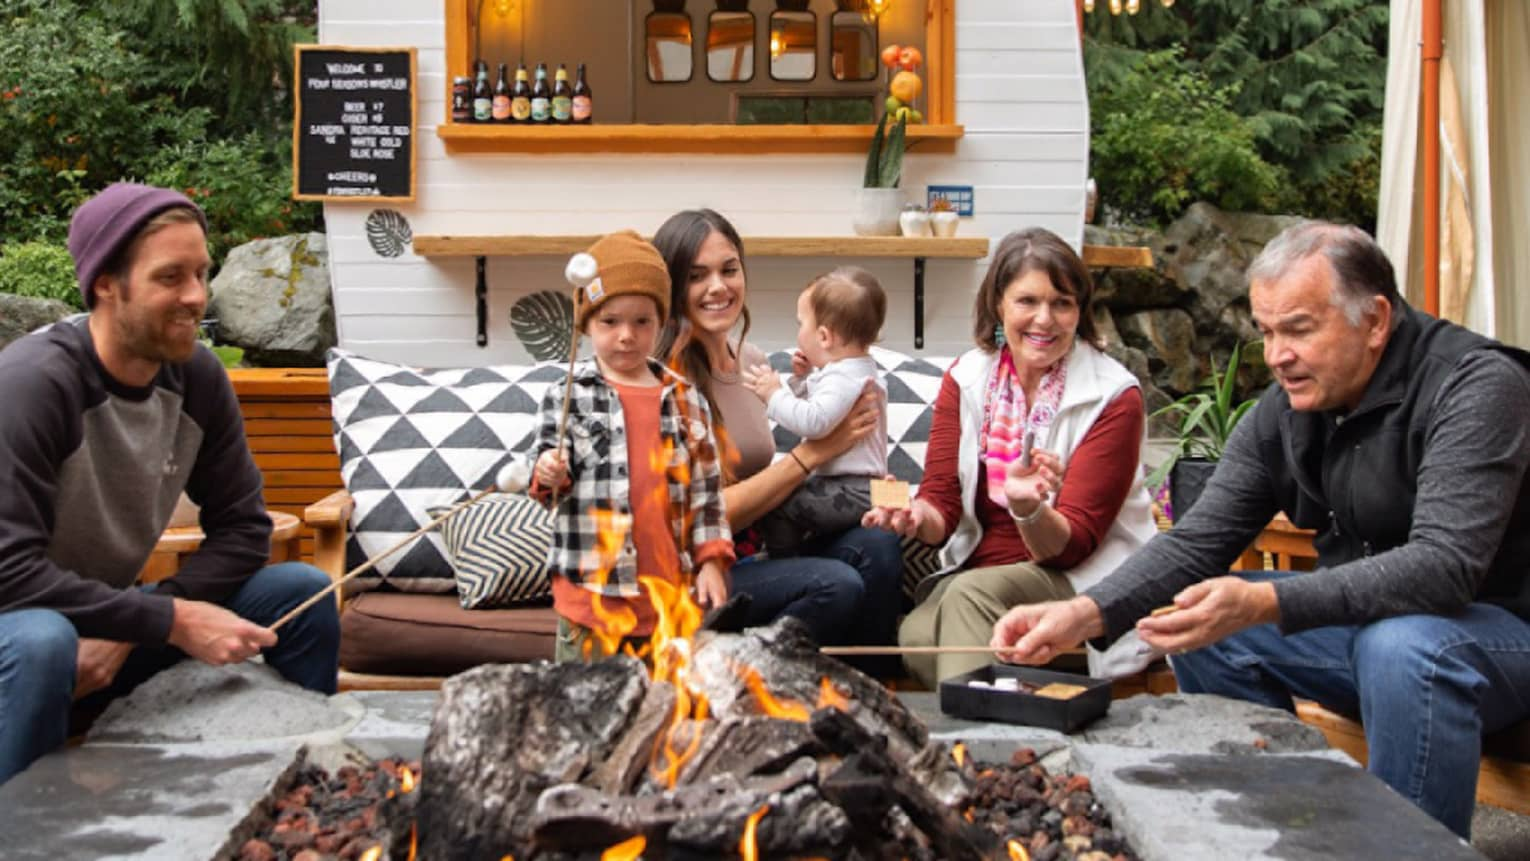 Family roasts marshmallows around outdoor fire pit by bar cart